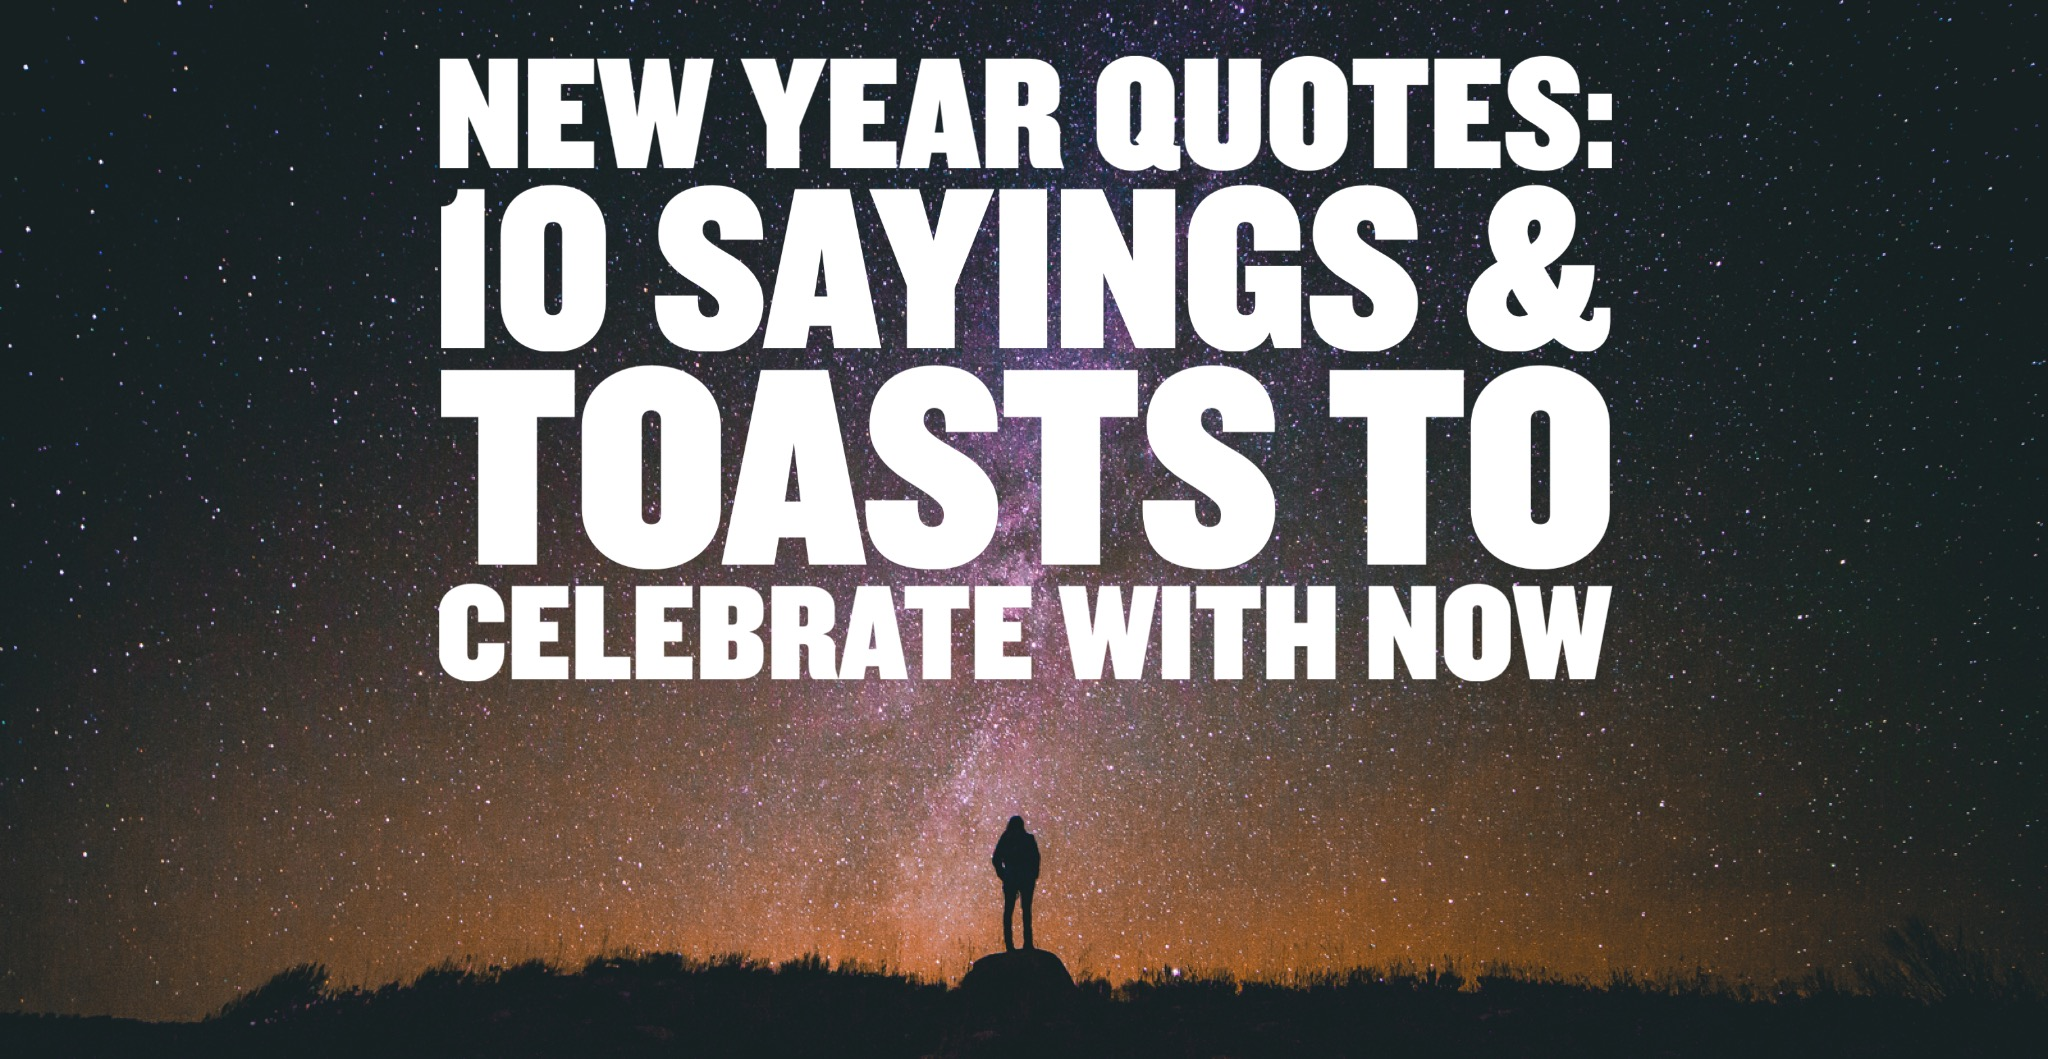 Celebration Of Life Quotes And Sayings New Year Quotes 10 Sayings & Toasts To Celebrate With